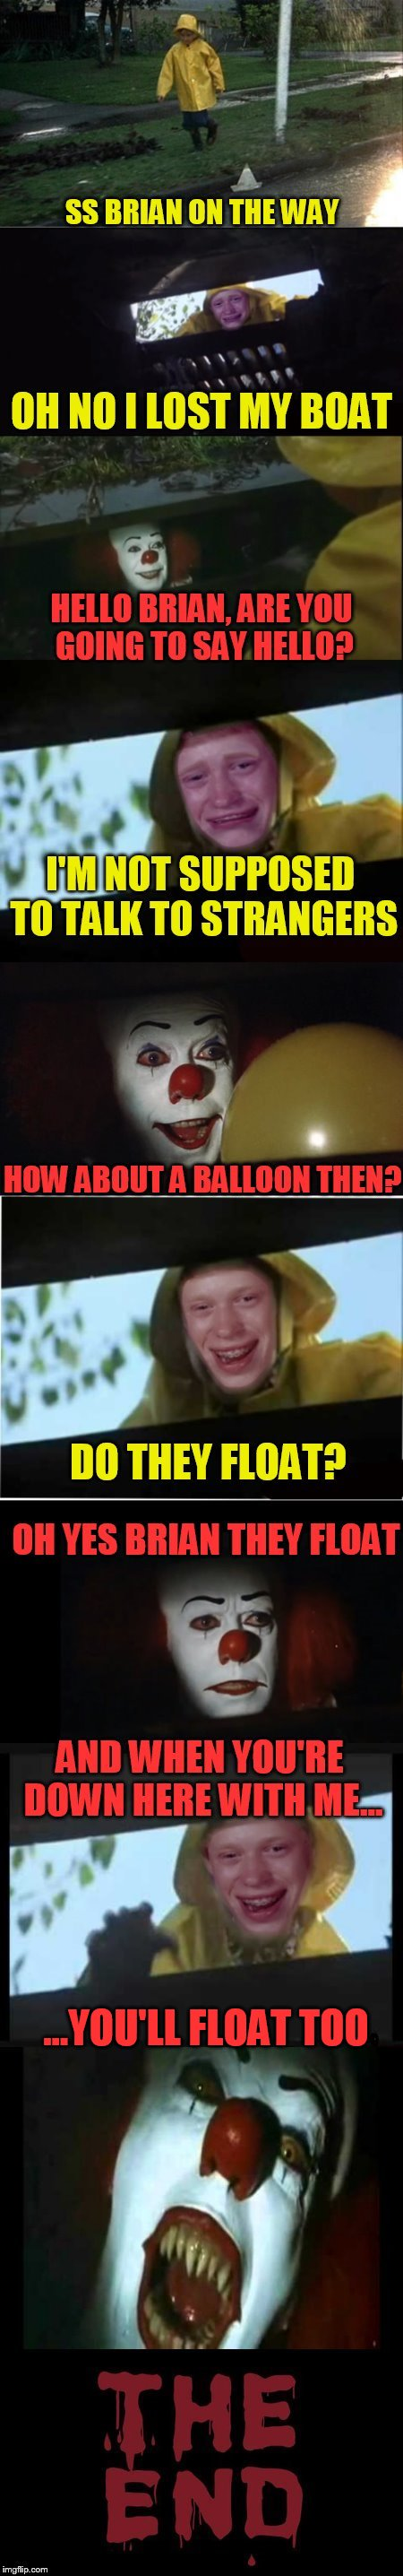 penny brian2 | ...YOU'LL FLOAT TOO | image tagged in penny brian2 | made w/ Imgflip meme maker